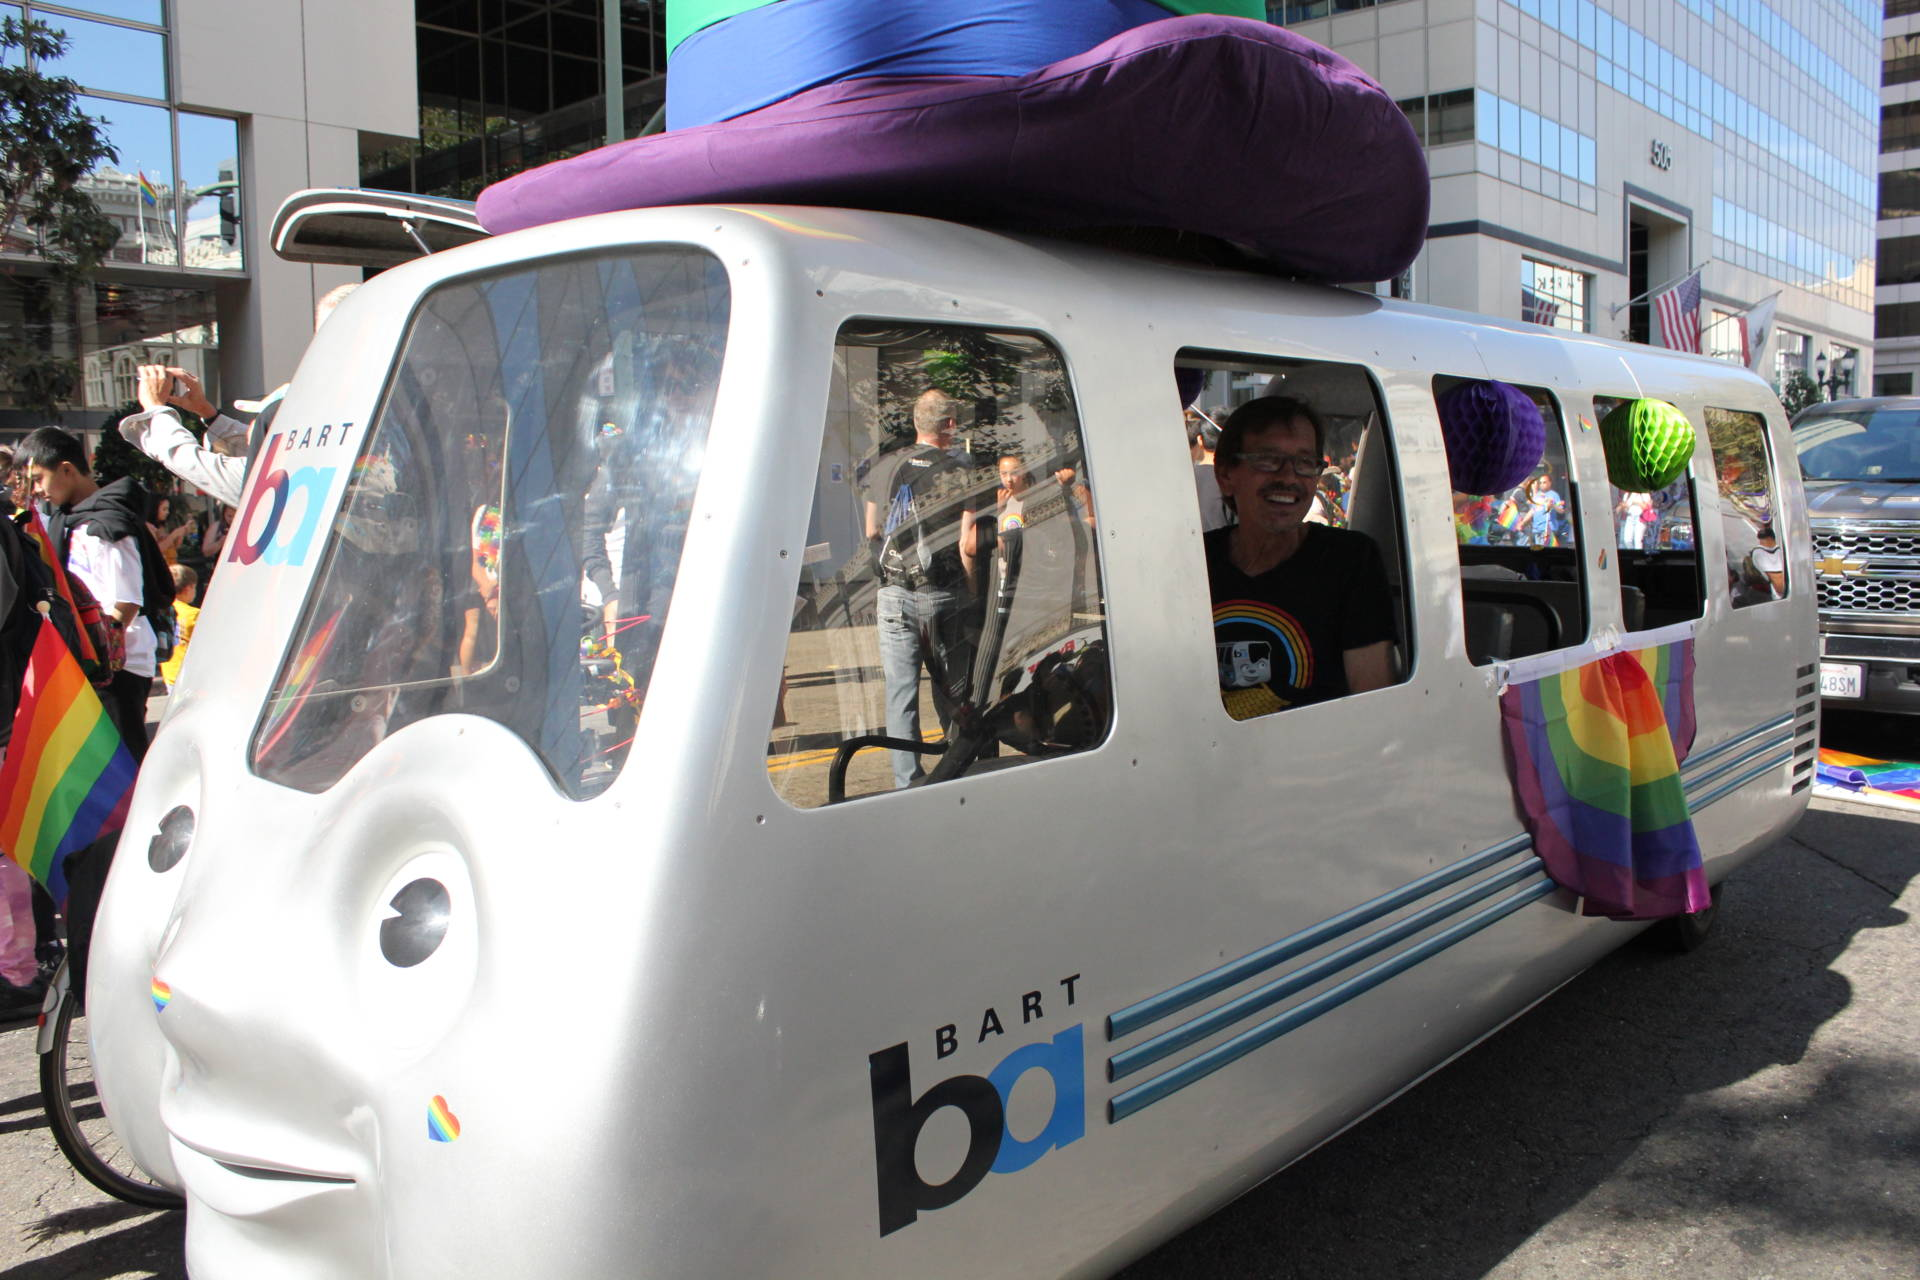 "BART Board President Robert Raburn says it's going to be a tough budget year for BART, but he ""twisted arms"" to make sure the BARTmobile could take part in Oakland Pride on Sunday."